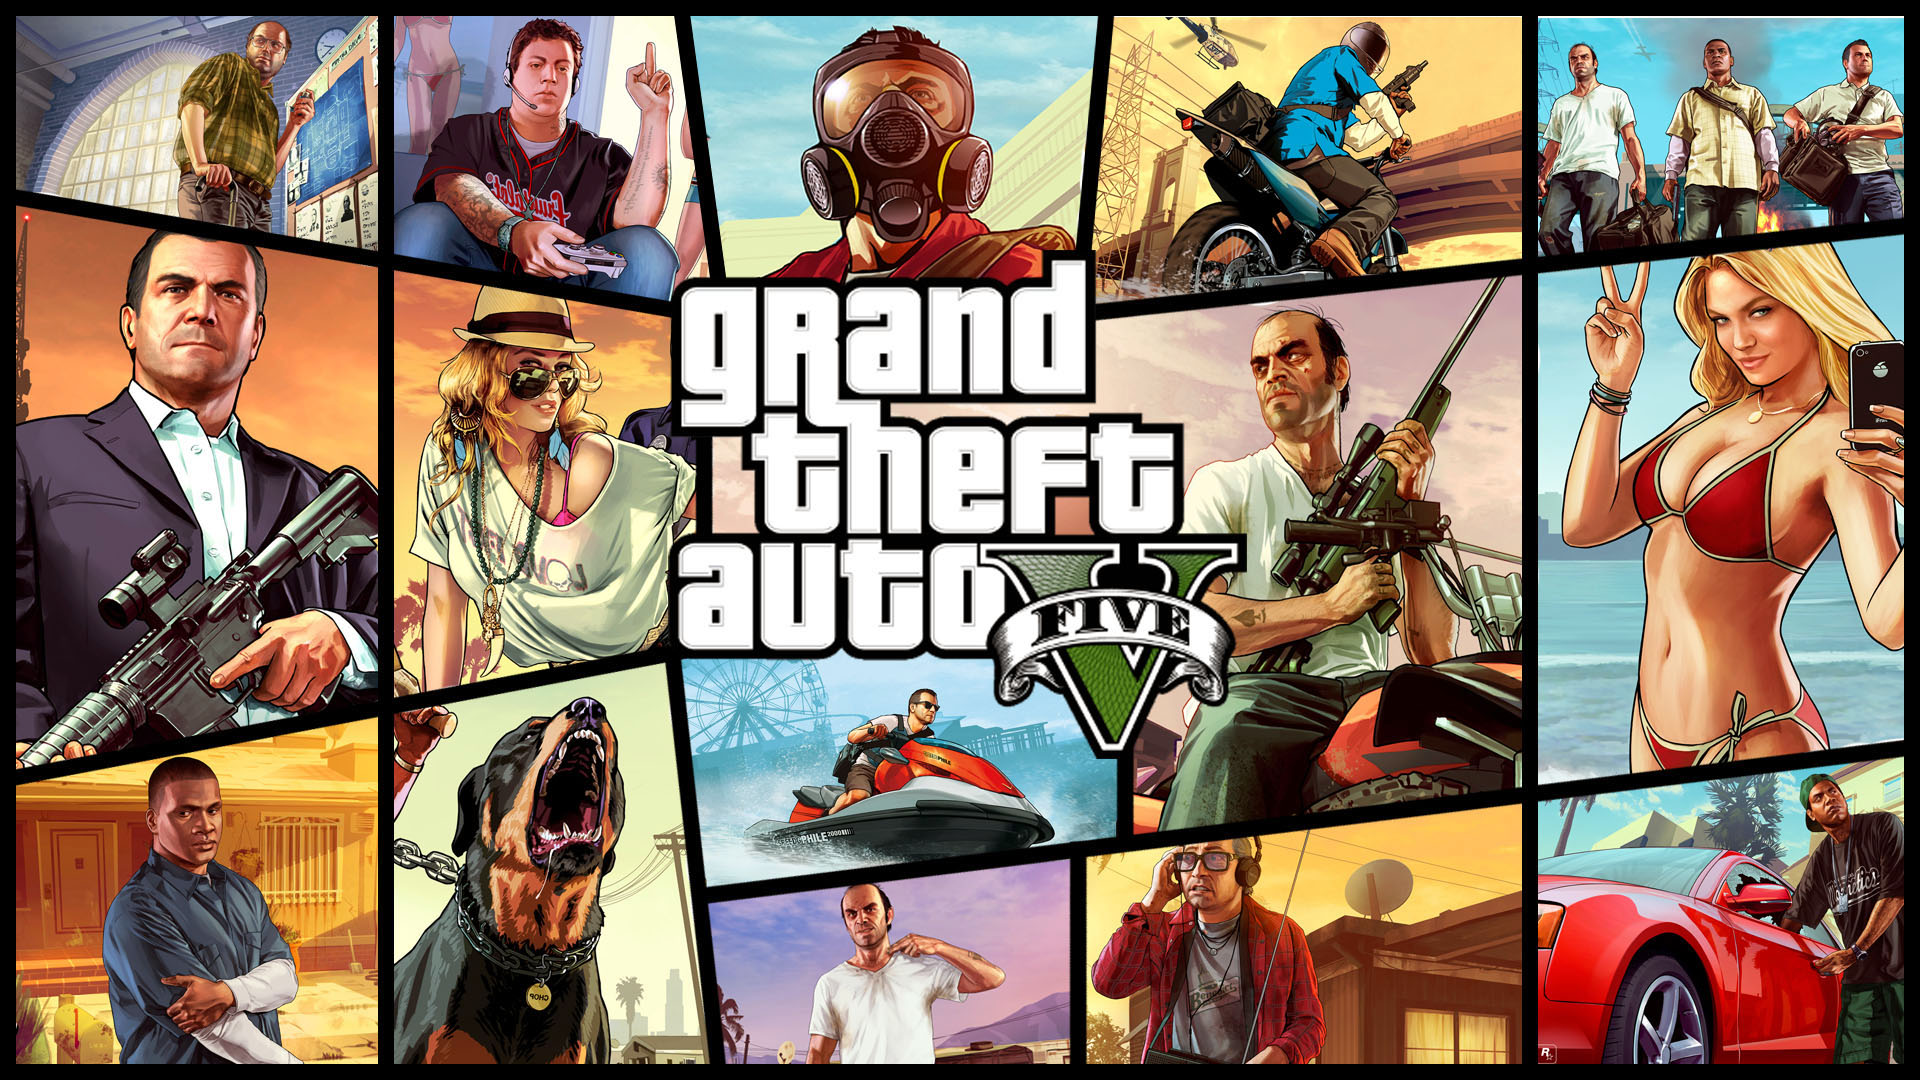 Download Grand Theft Auto 5 (GTA 5) for iPad, Untested GTA 5